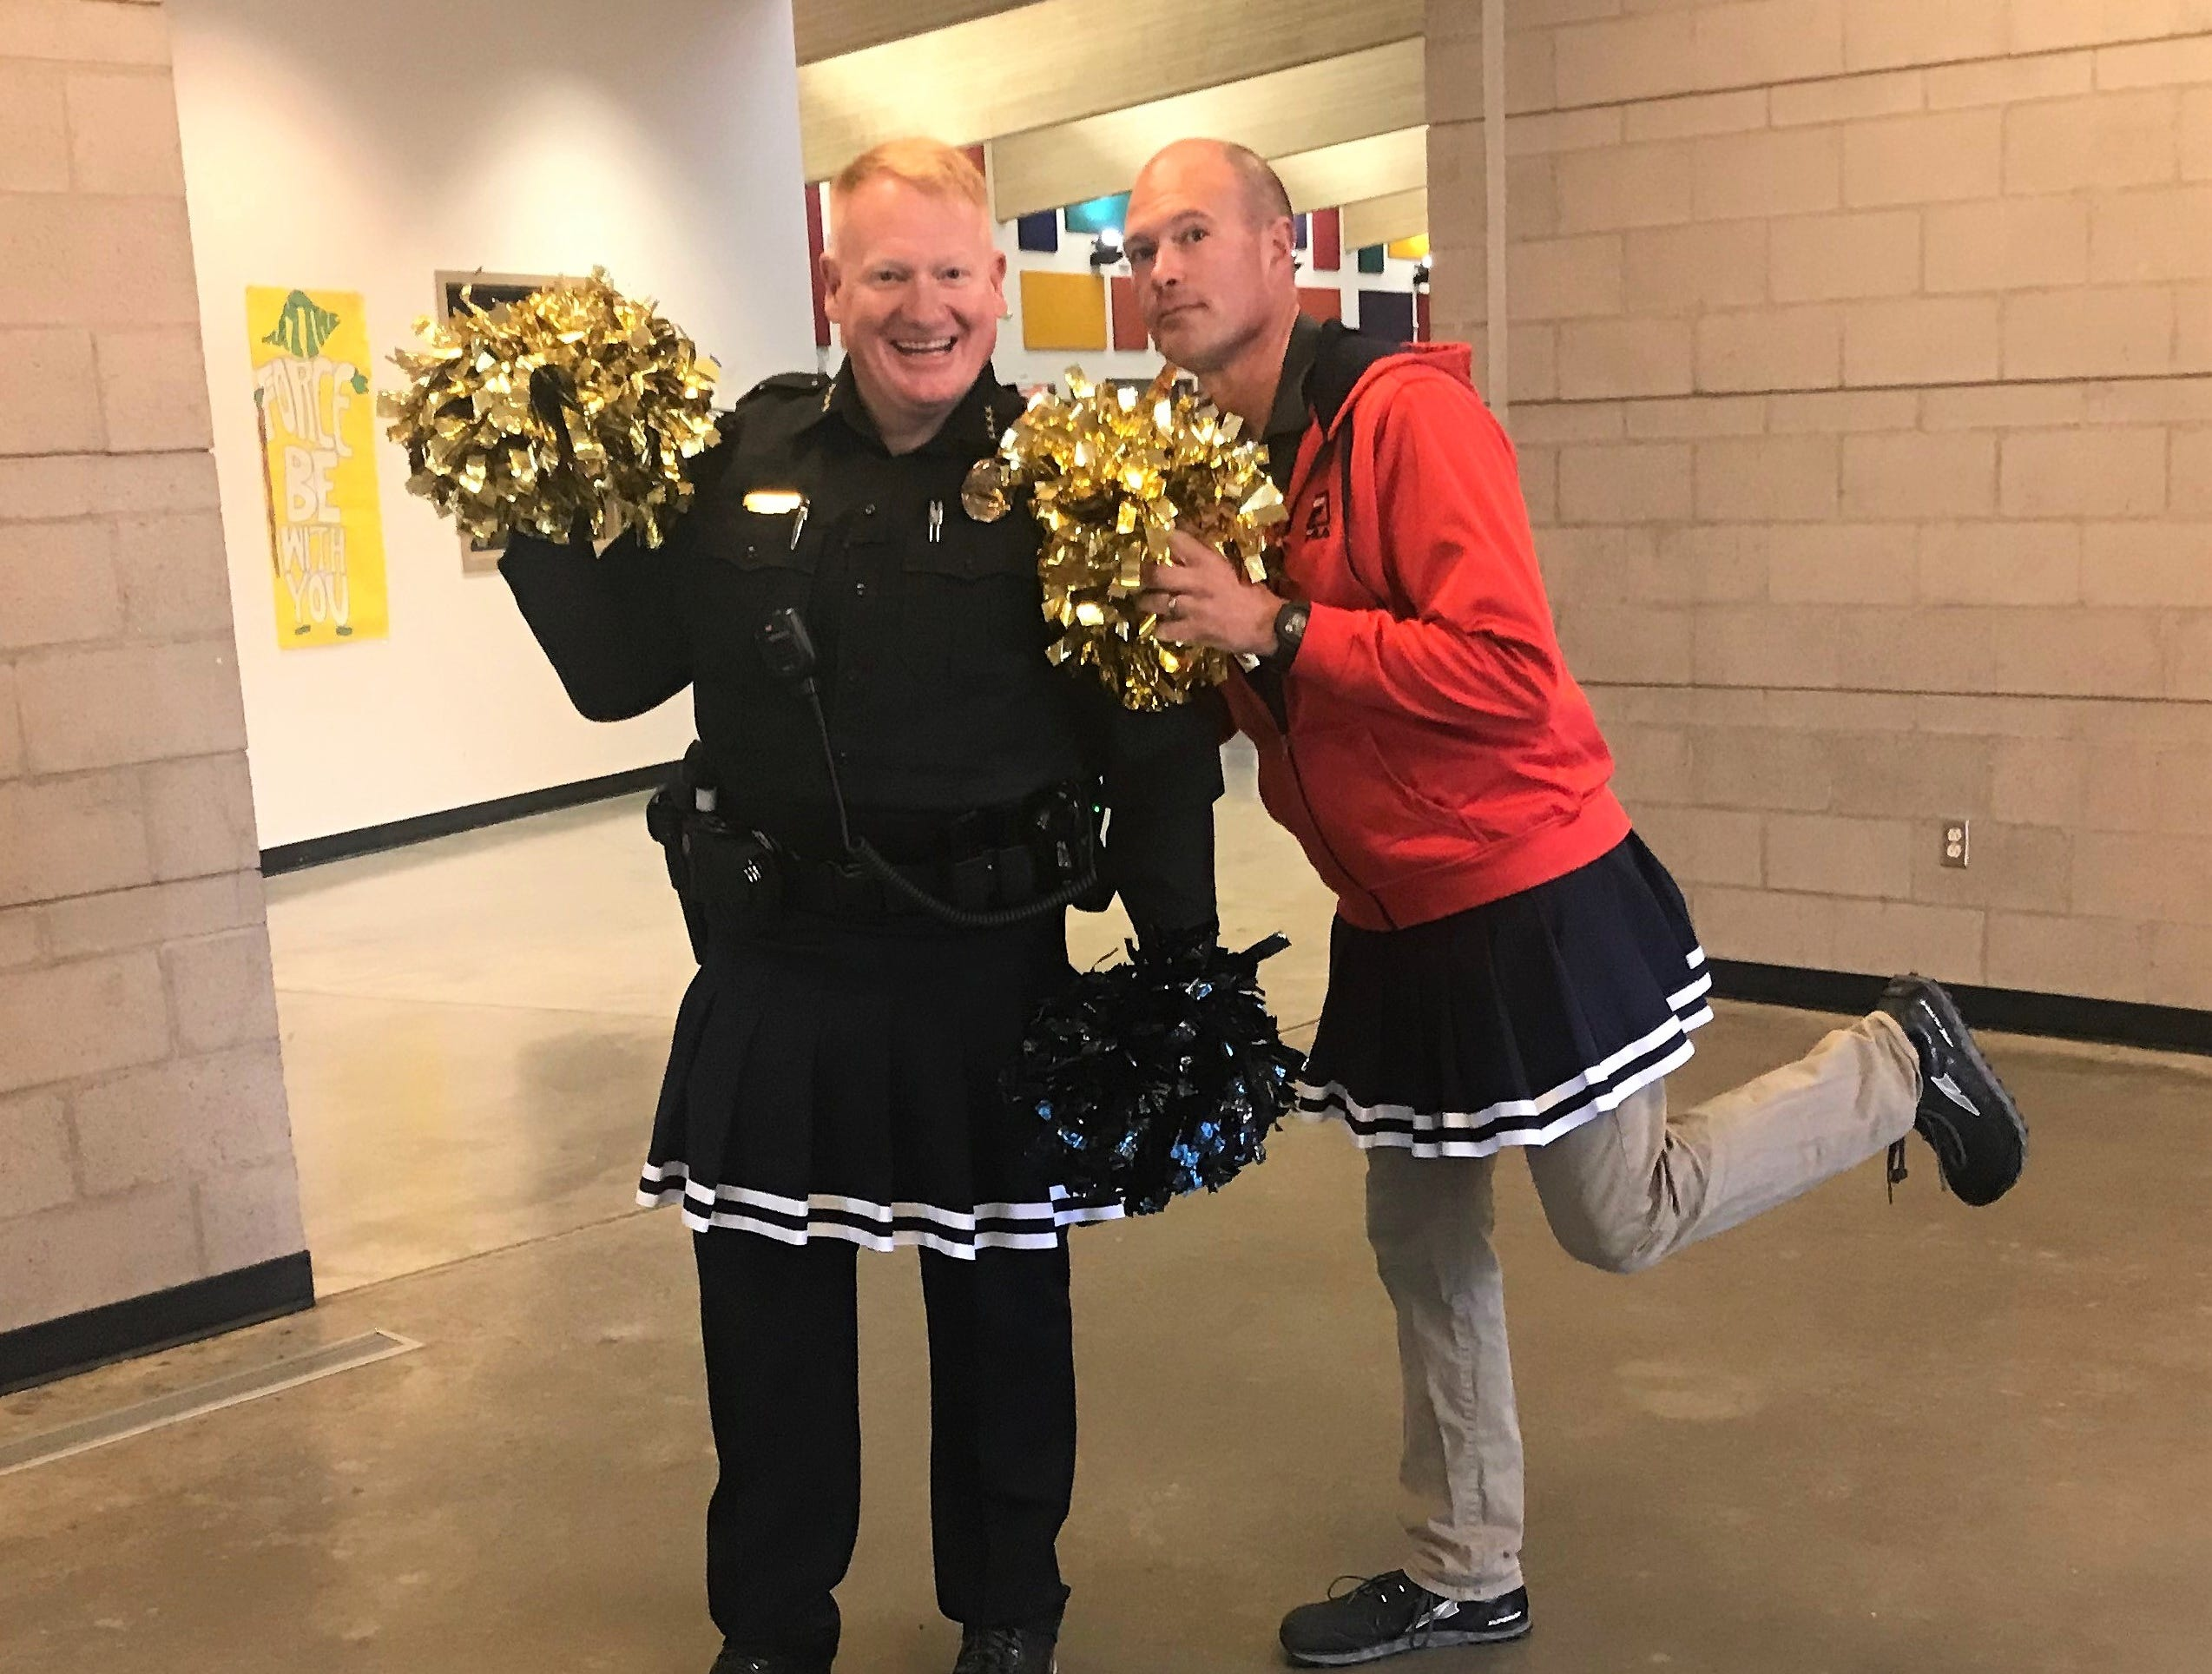 Ruidoso Police Chief Darren Hooker and school board president Luther Light get their pom-poms ready to cheer on the student body at RMS prior to PARCC testing.